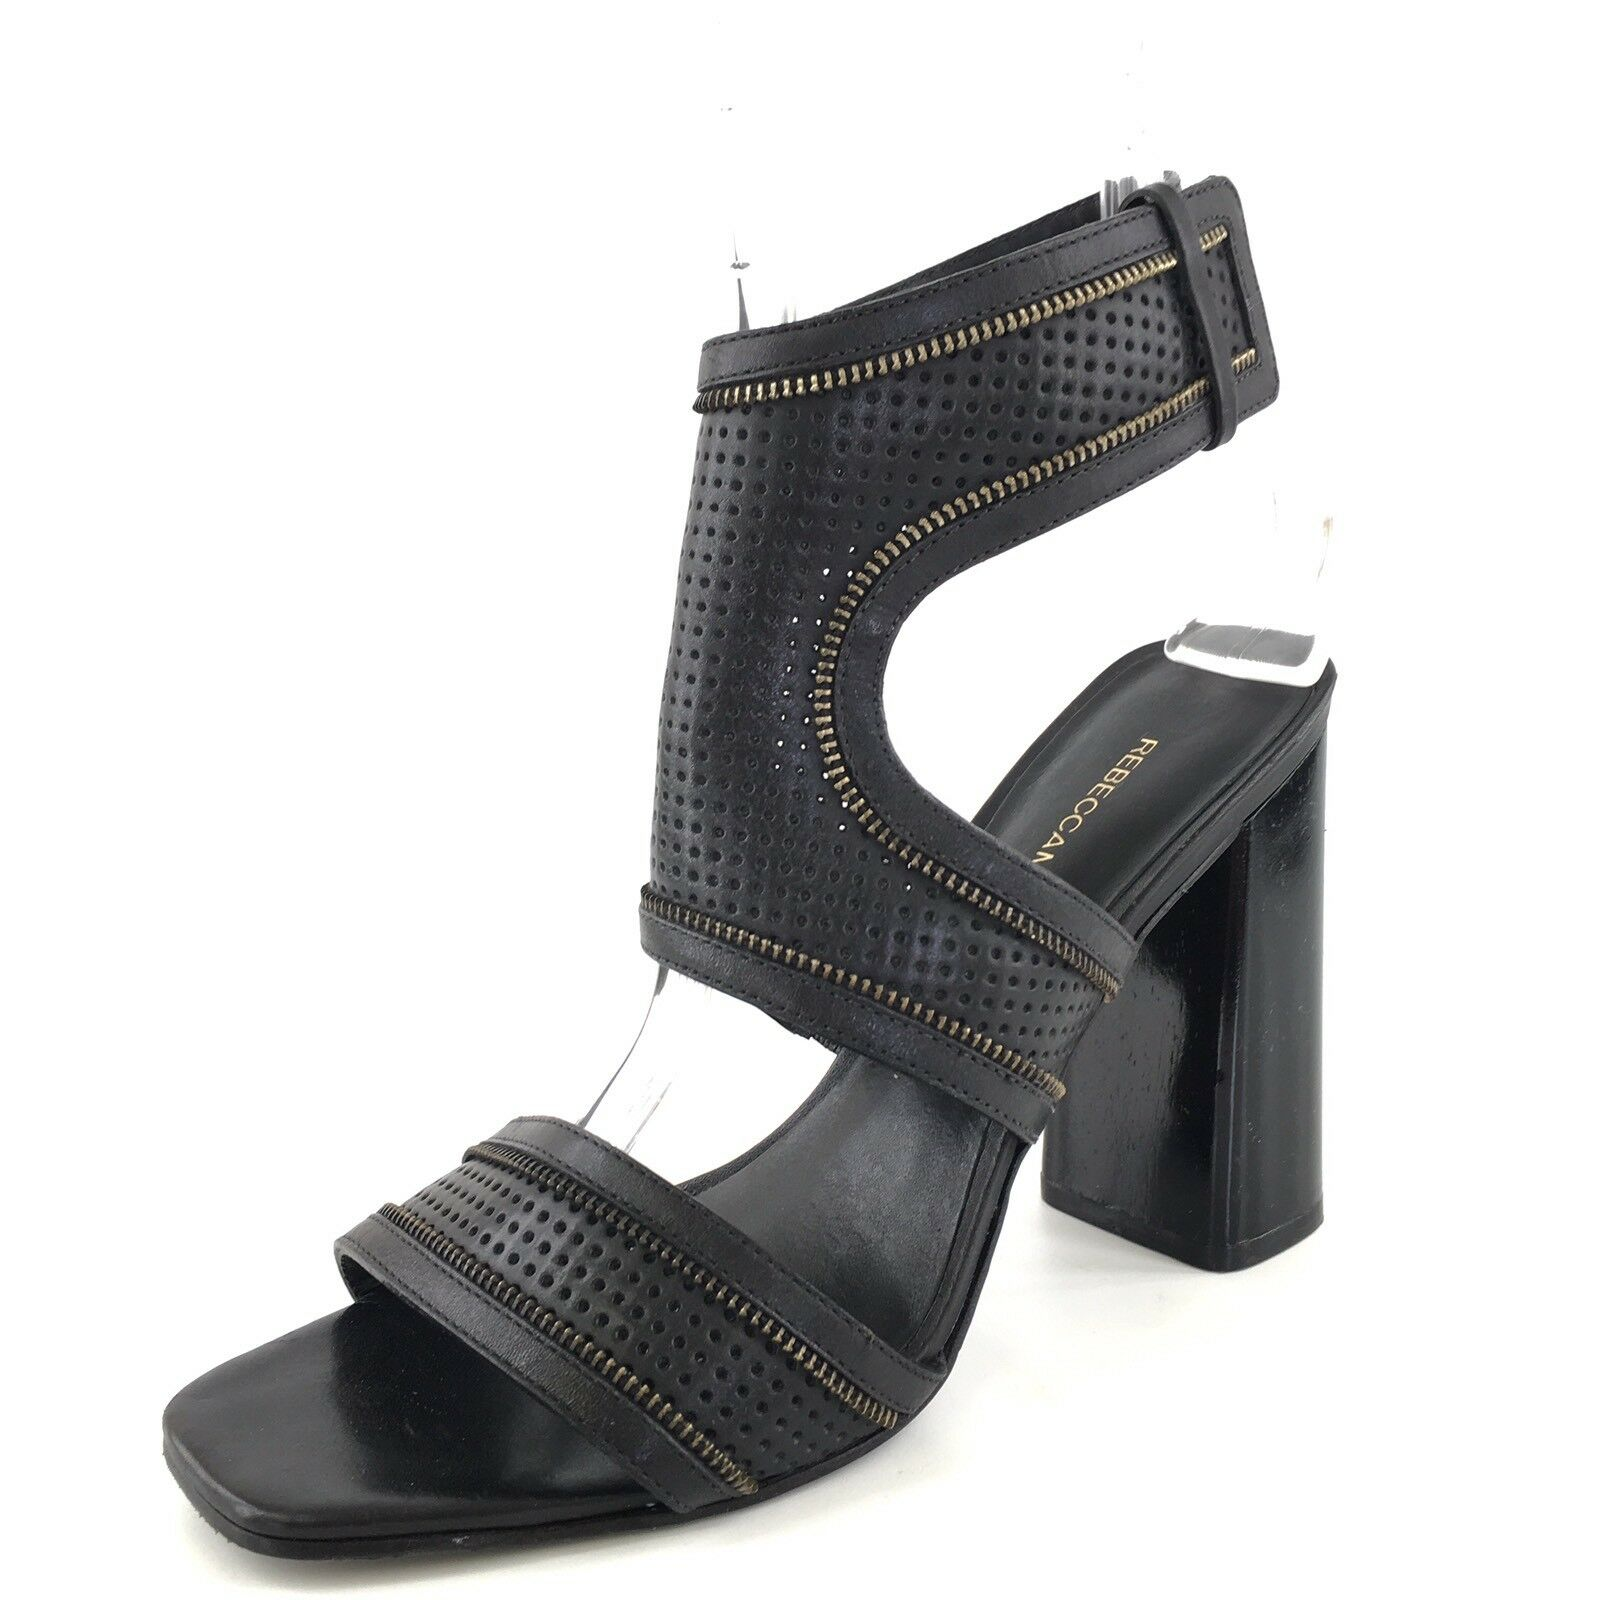 Rebecca Minkoff Christy Black Leather Ankle Cuff Sandals Women's Size 8.5 M*